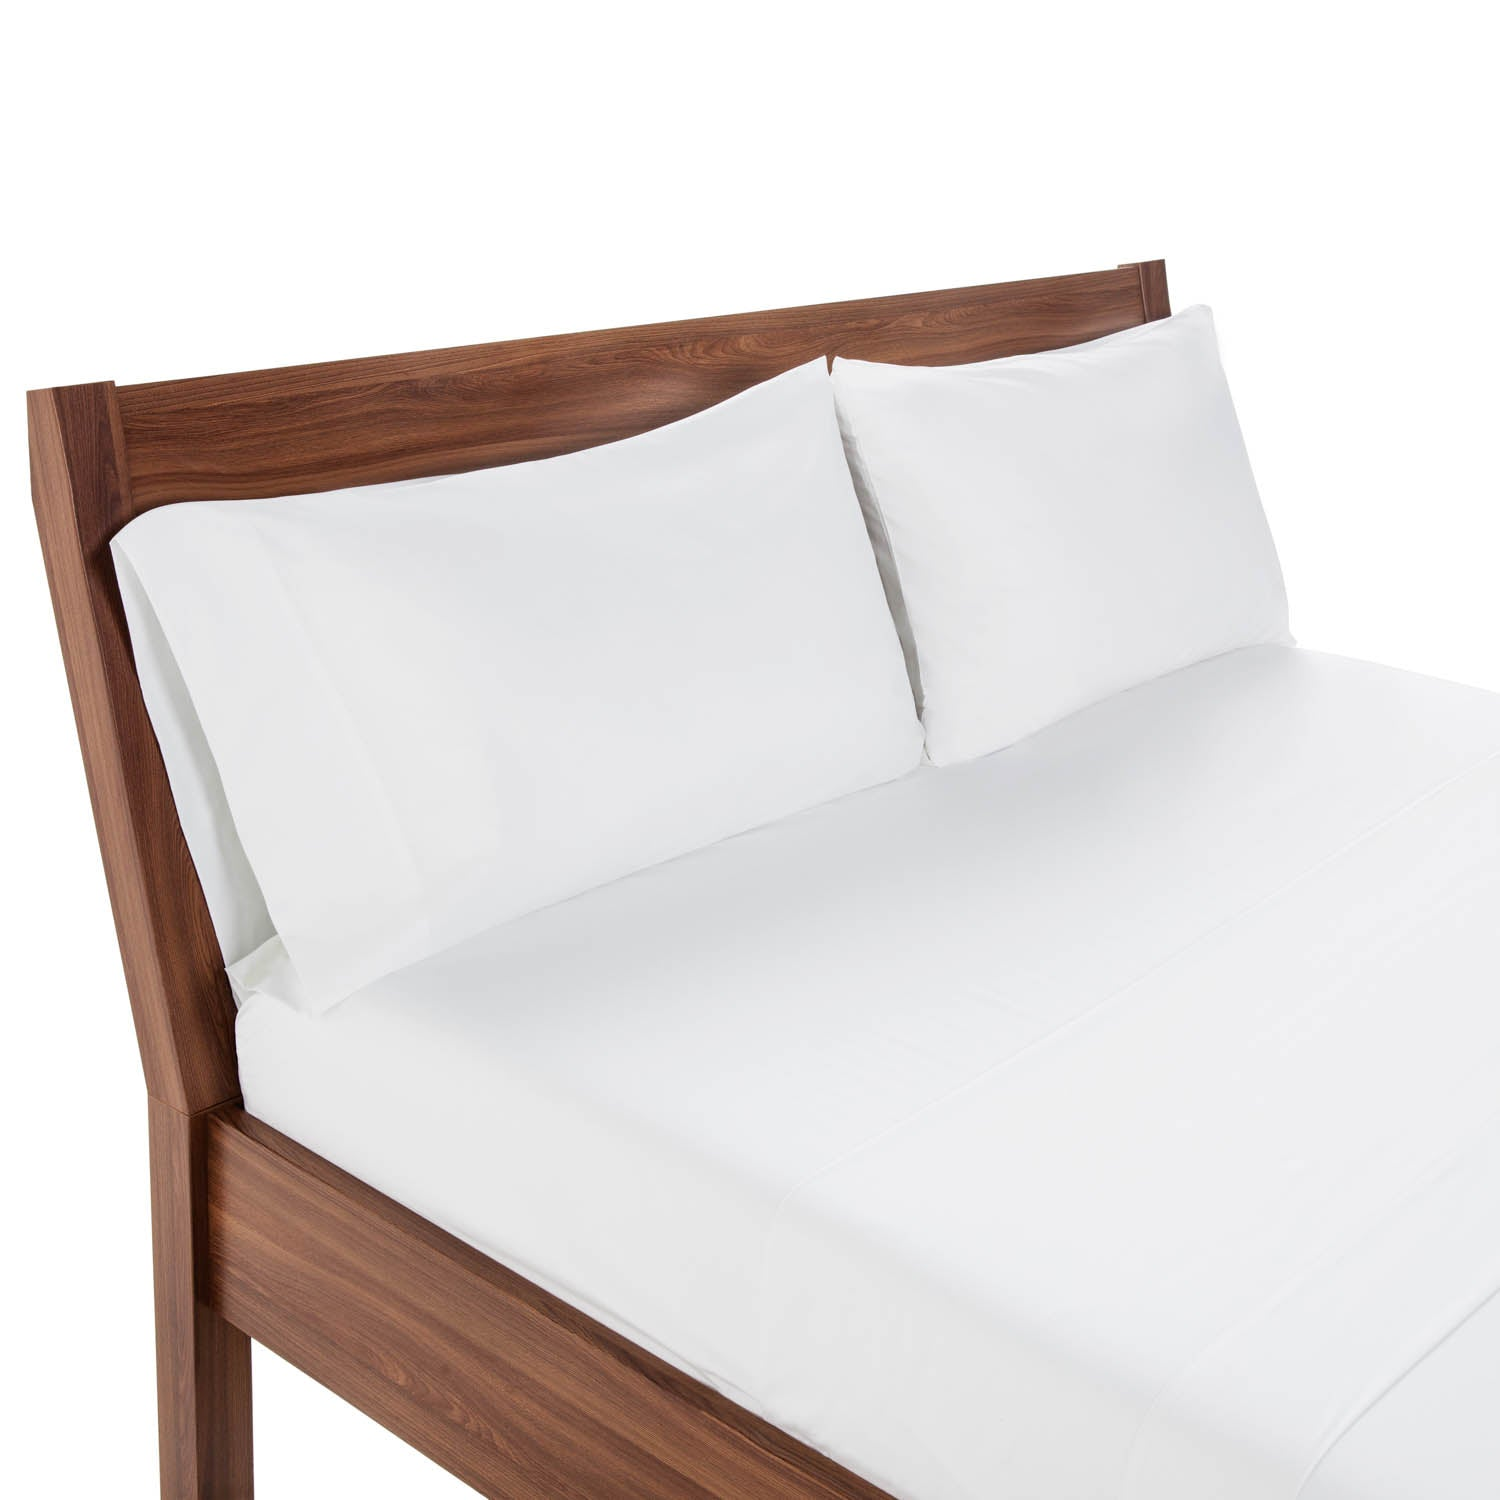 Weekender Hotel Flat Sheet, Full XL, White